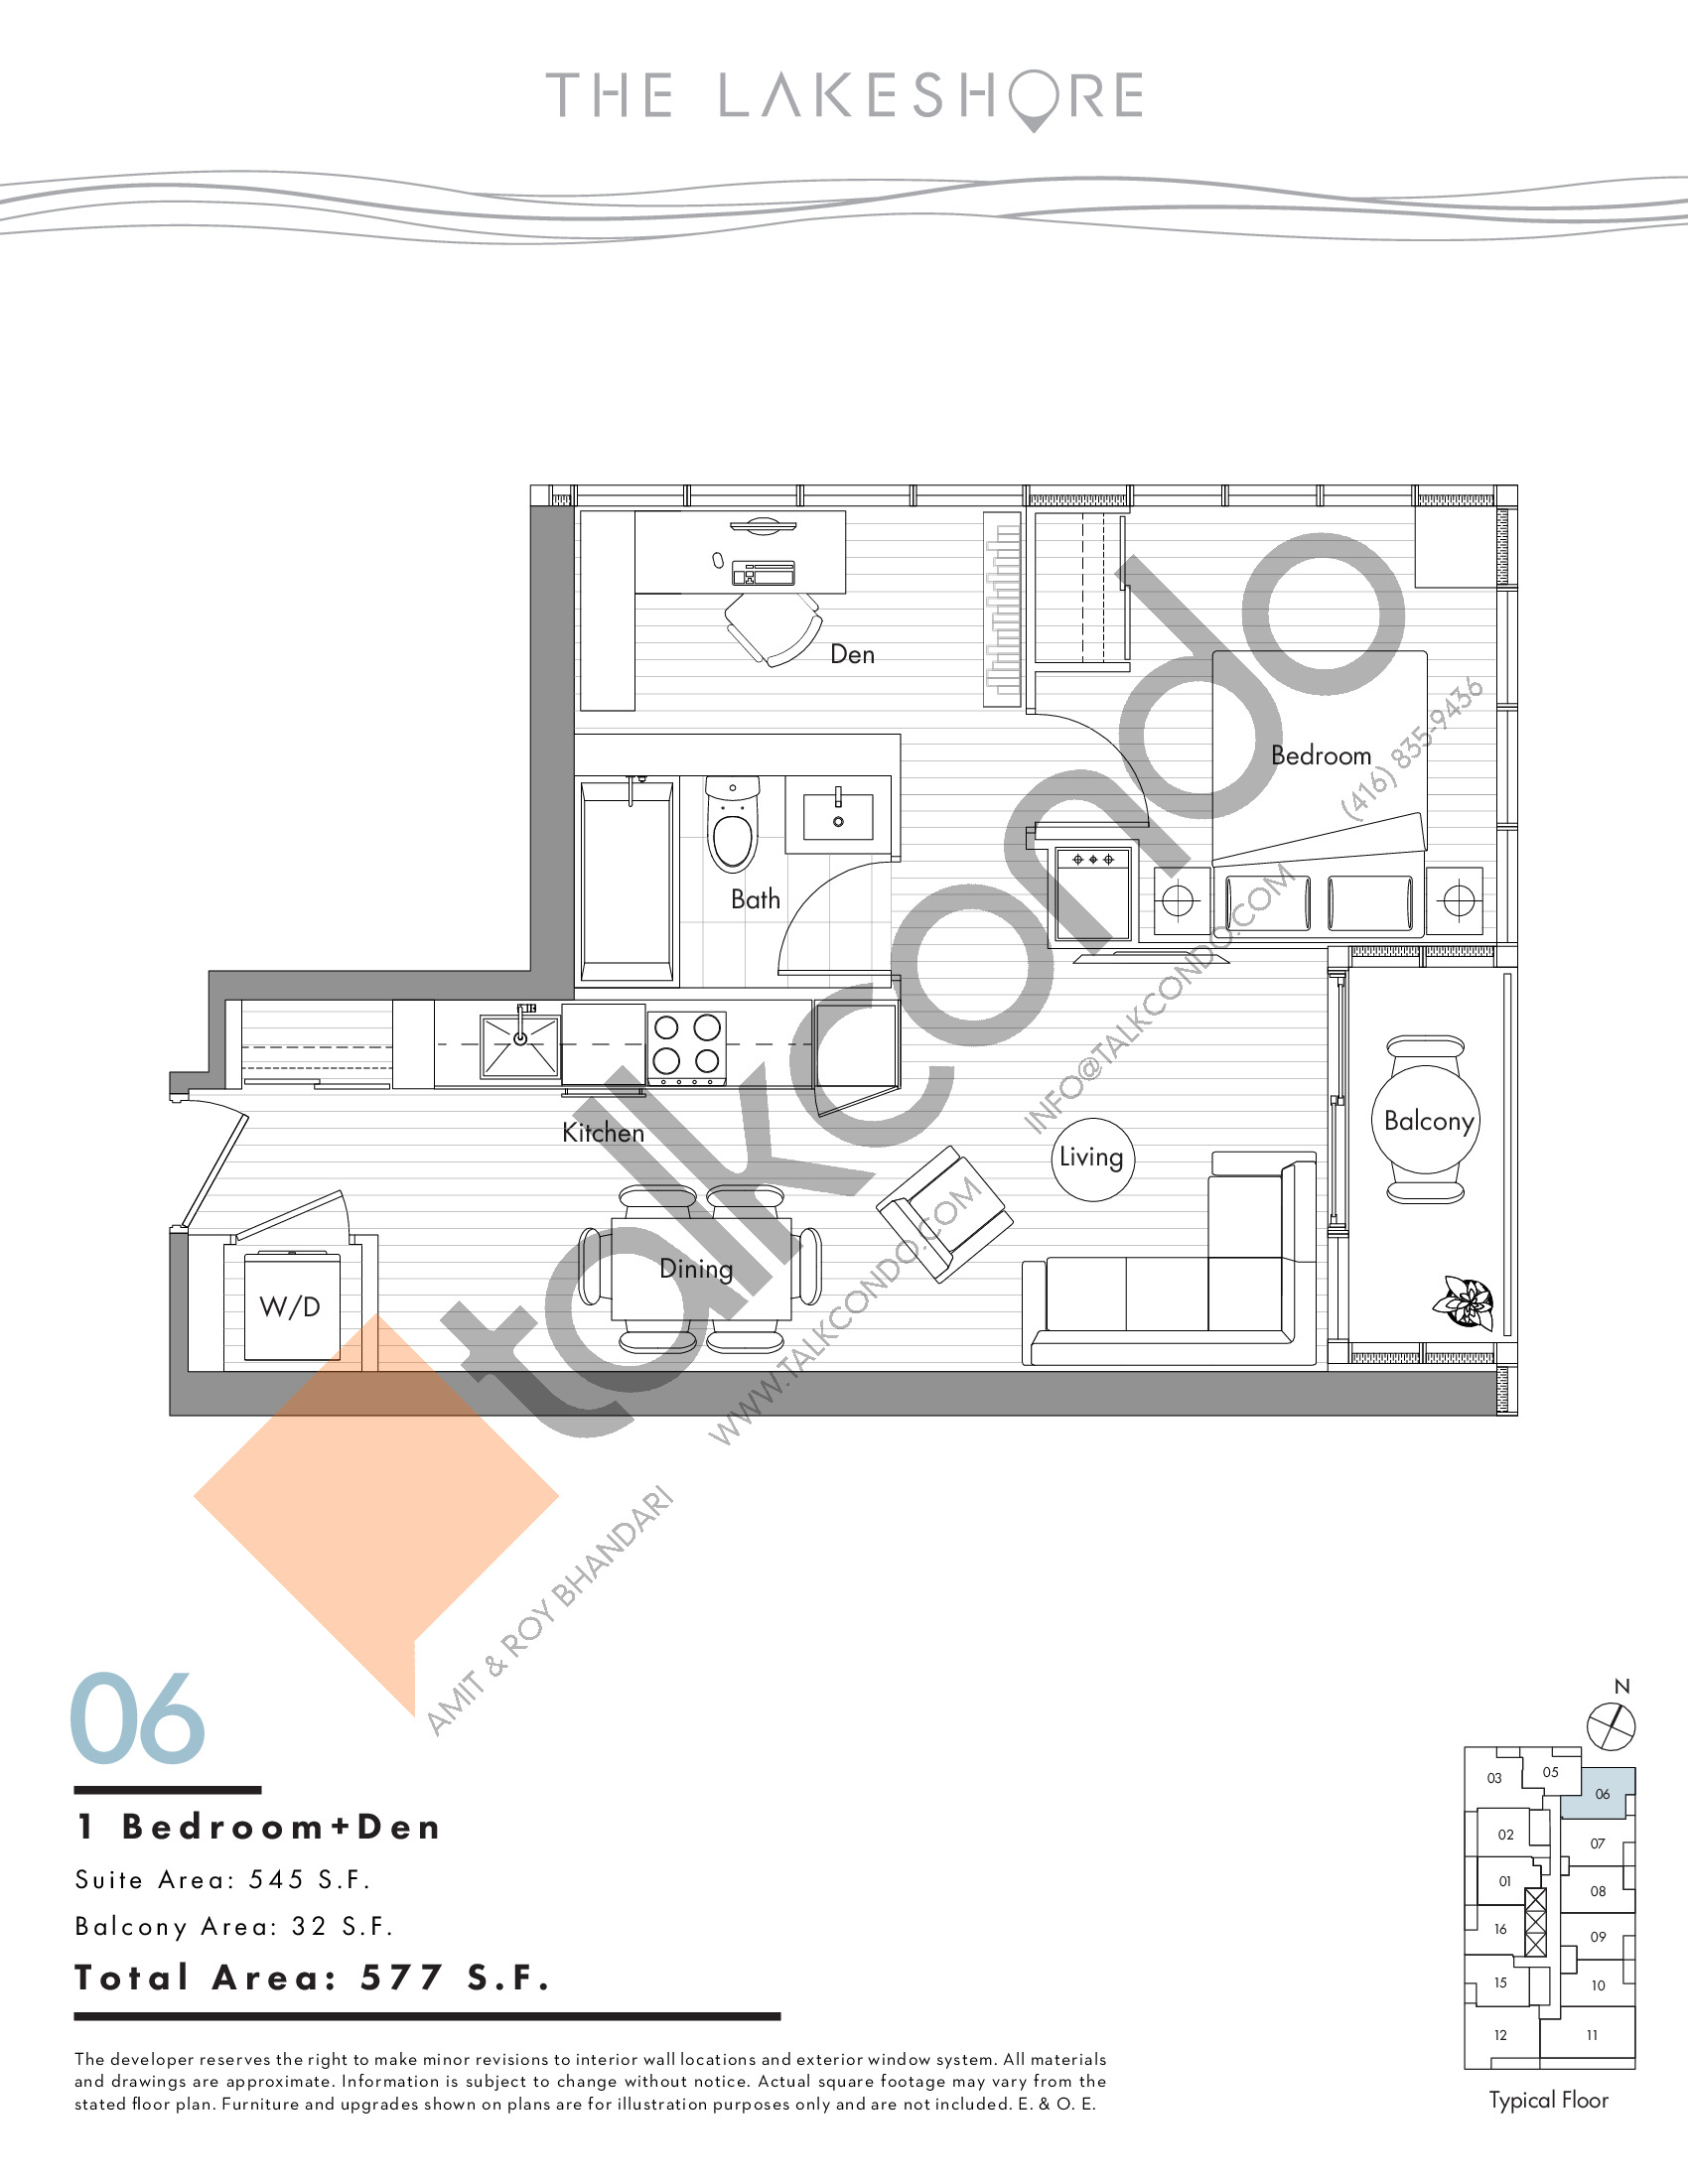 06 Floor Plan at The LakeShore Condos - 545 sq.ft